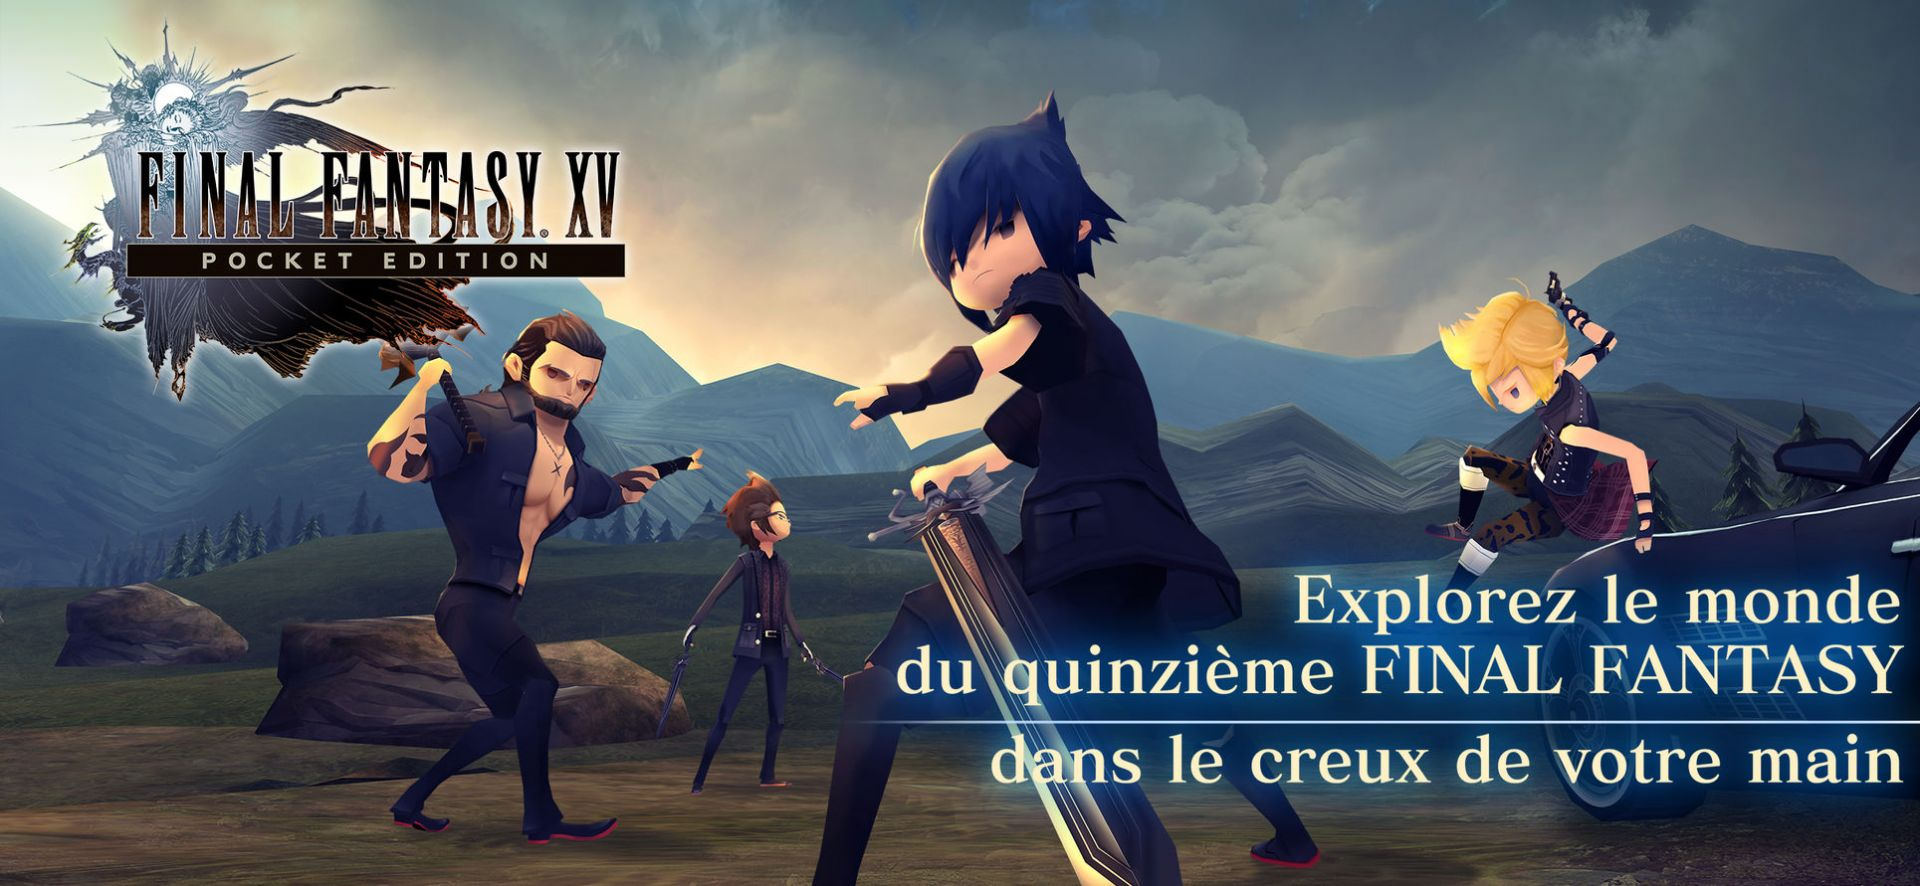 Final Fantasy XV Pocket Edition de Square Enix